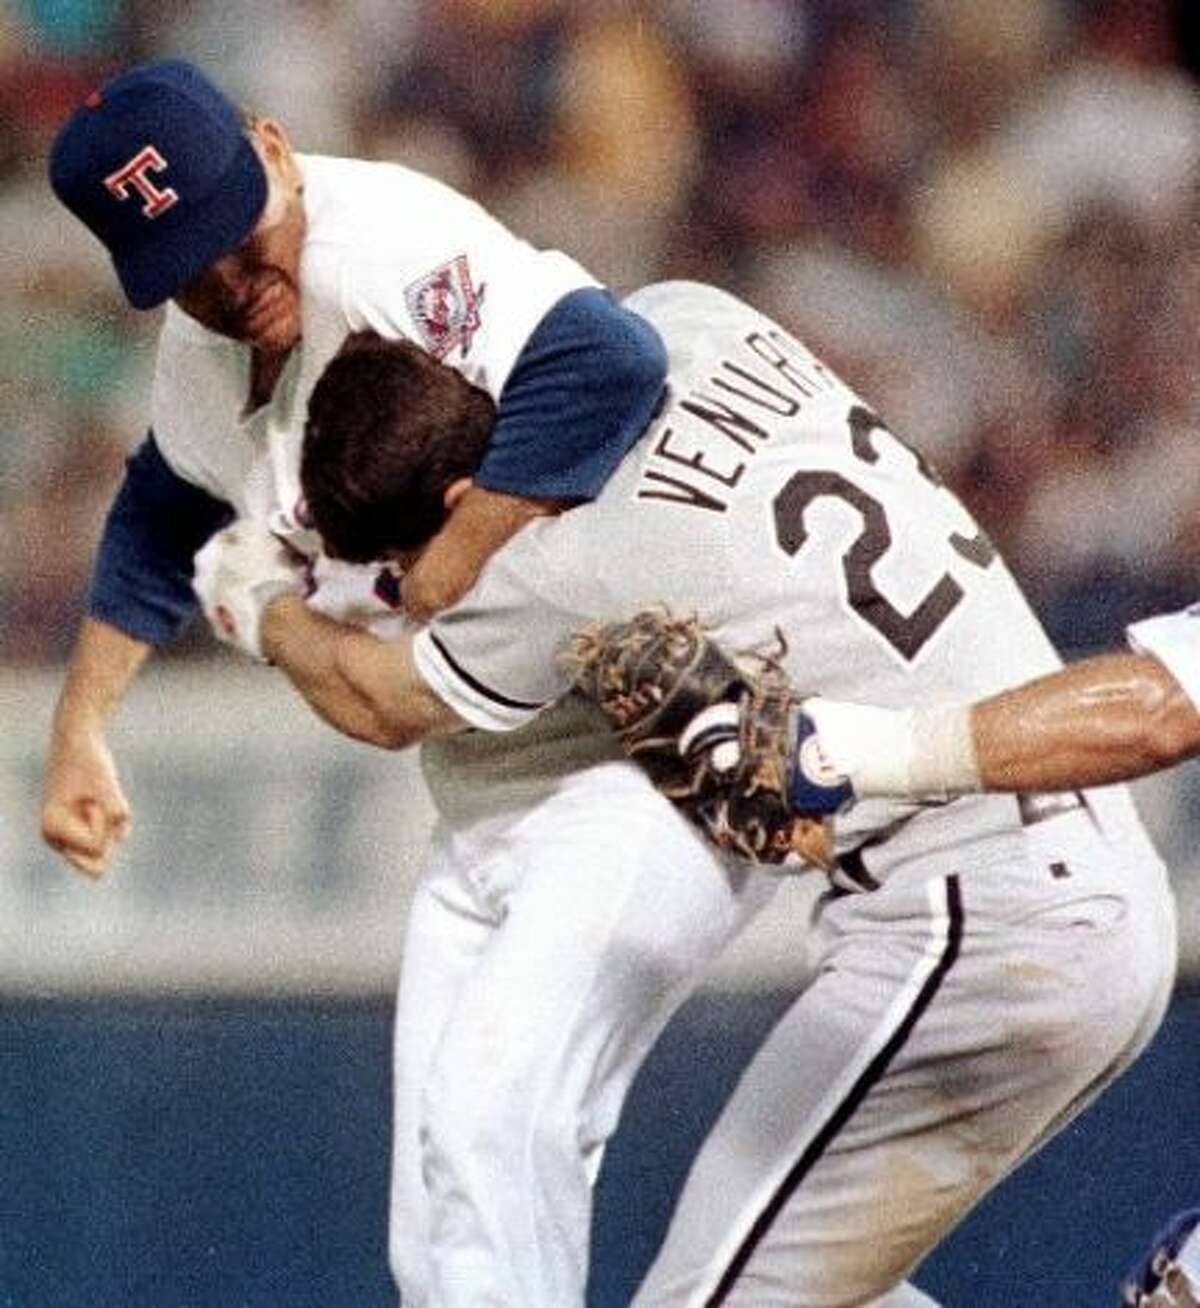 Nolan Ryan vs. Robin Ventura In 1993, Robin Ventura thought it would be a good idea to charge the mound, but the 46-year-old Nolan Ryan taught the 26-year-old Ventura a lesson. After being hit in the leg by a pitch, Ventura took a couple slow steps toward the mound before charging. That's when Ryan strapped on a headlock and unleashed a flurry of punches. Amazingly, Ryan wasn't ejected from the game, because umpires rules he had every right to defend himself.